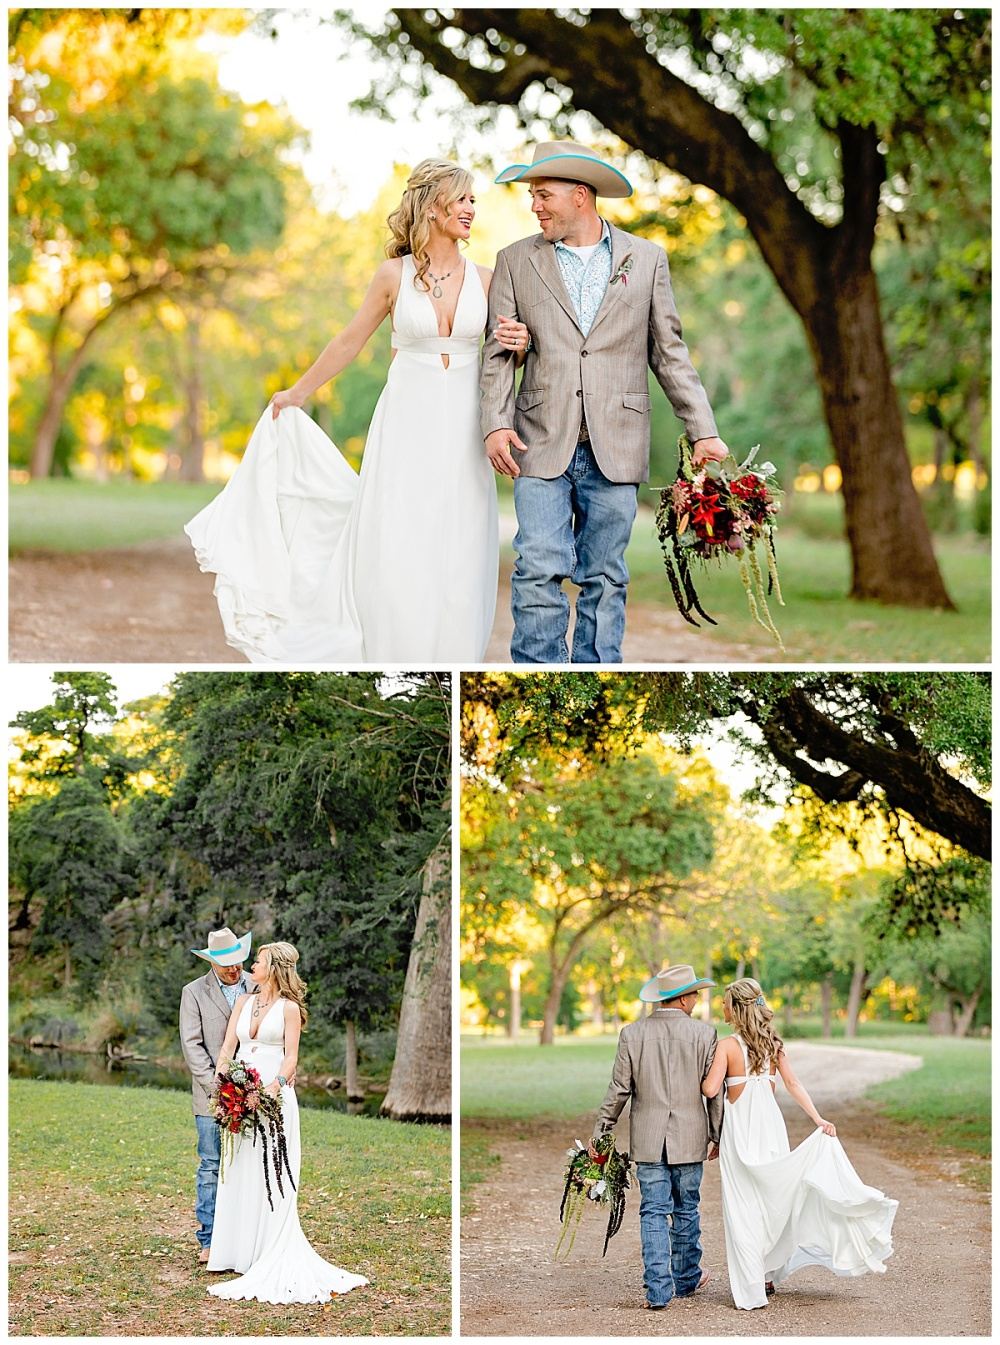 Eagle-Dancer-Ranch-Boerne-Texas-Wedding-Party-Barn-Carly-Barton-Photography_0043.jpg